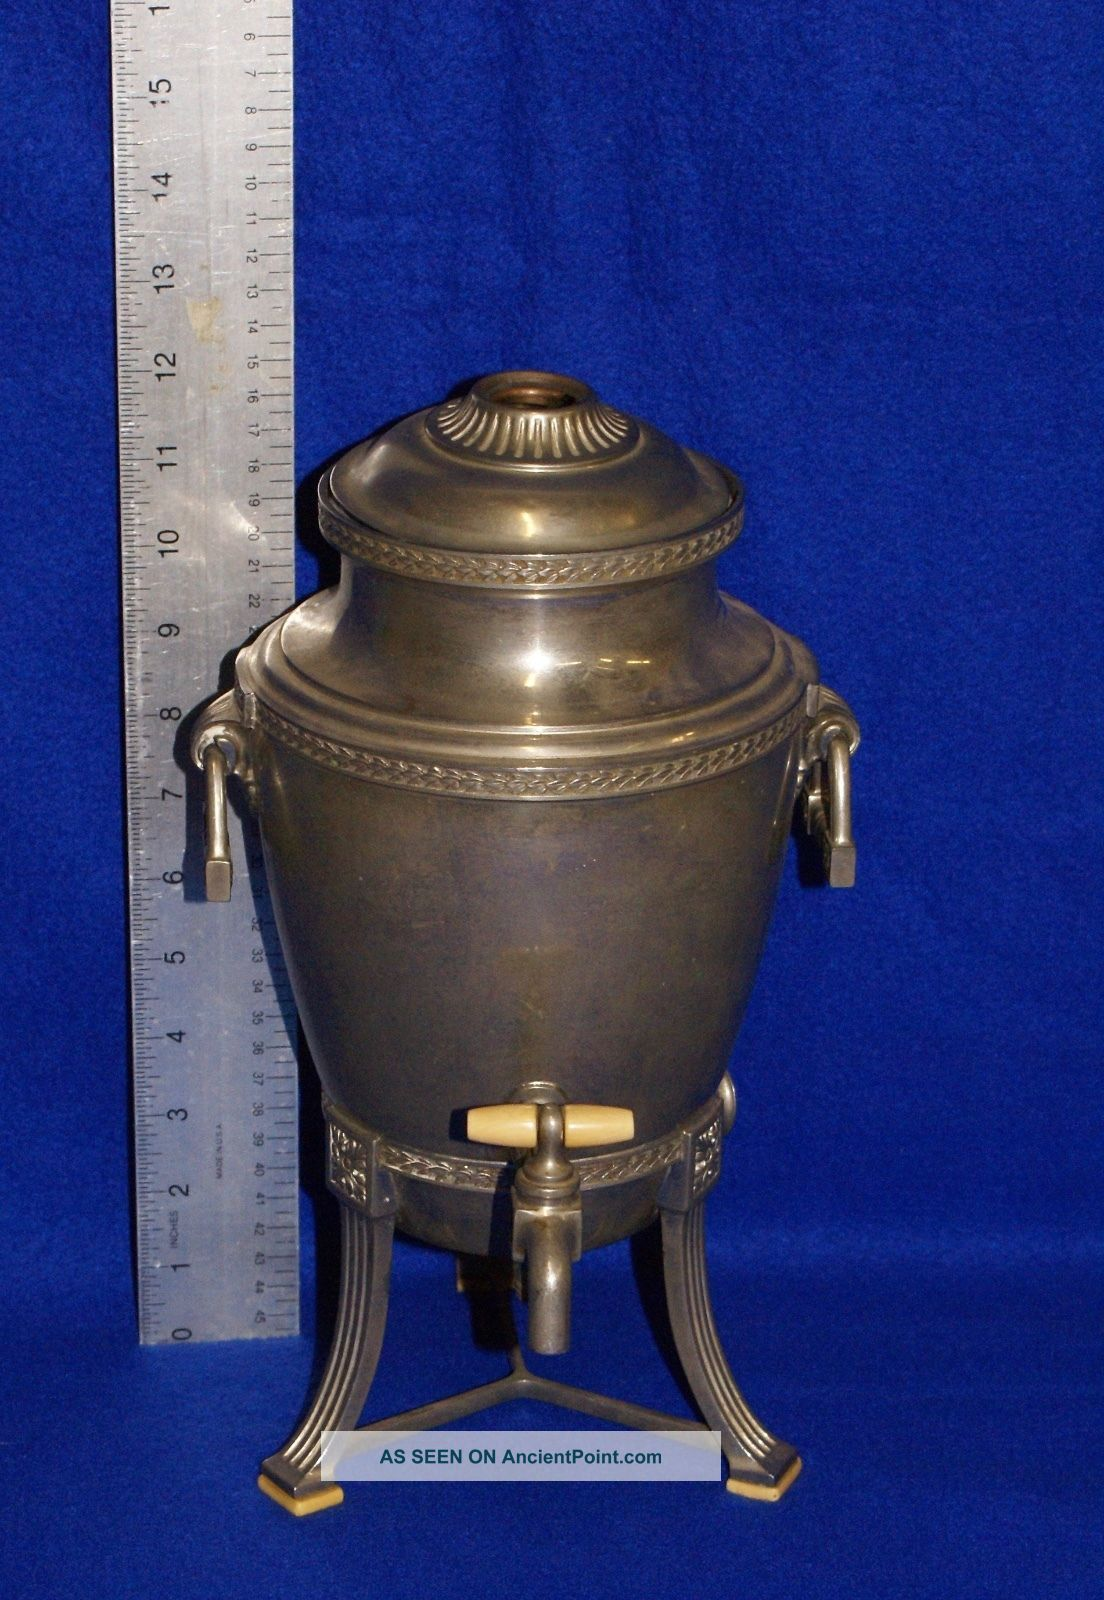 1914 Universal Silver - Plated Electric Coffee Maker From Landers Frary And Clark Other Antique Home & Hearth photo